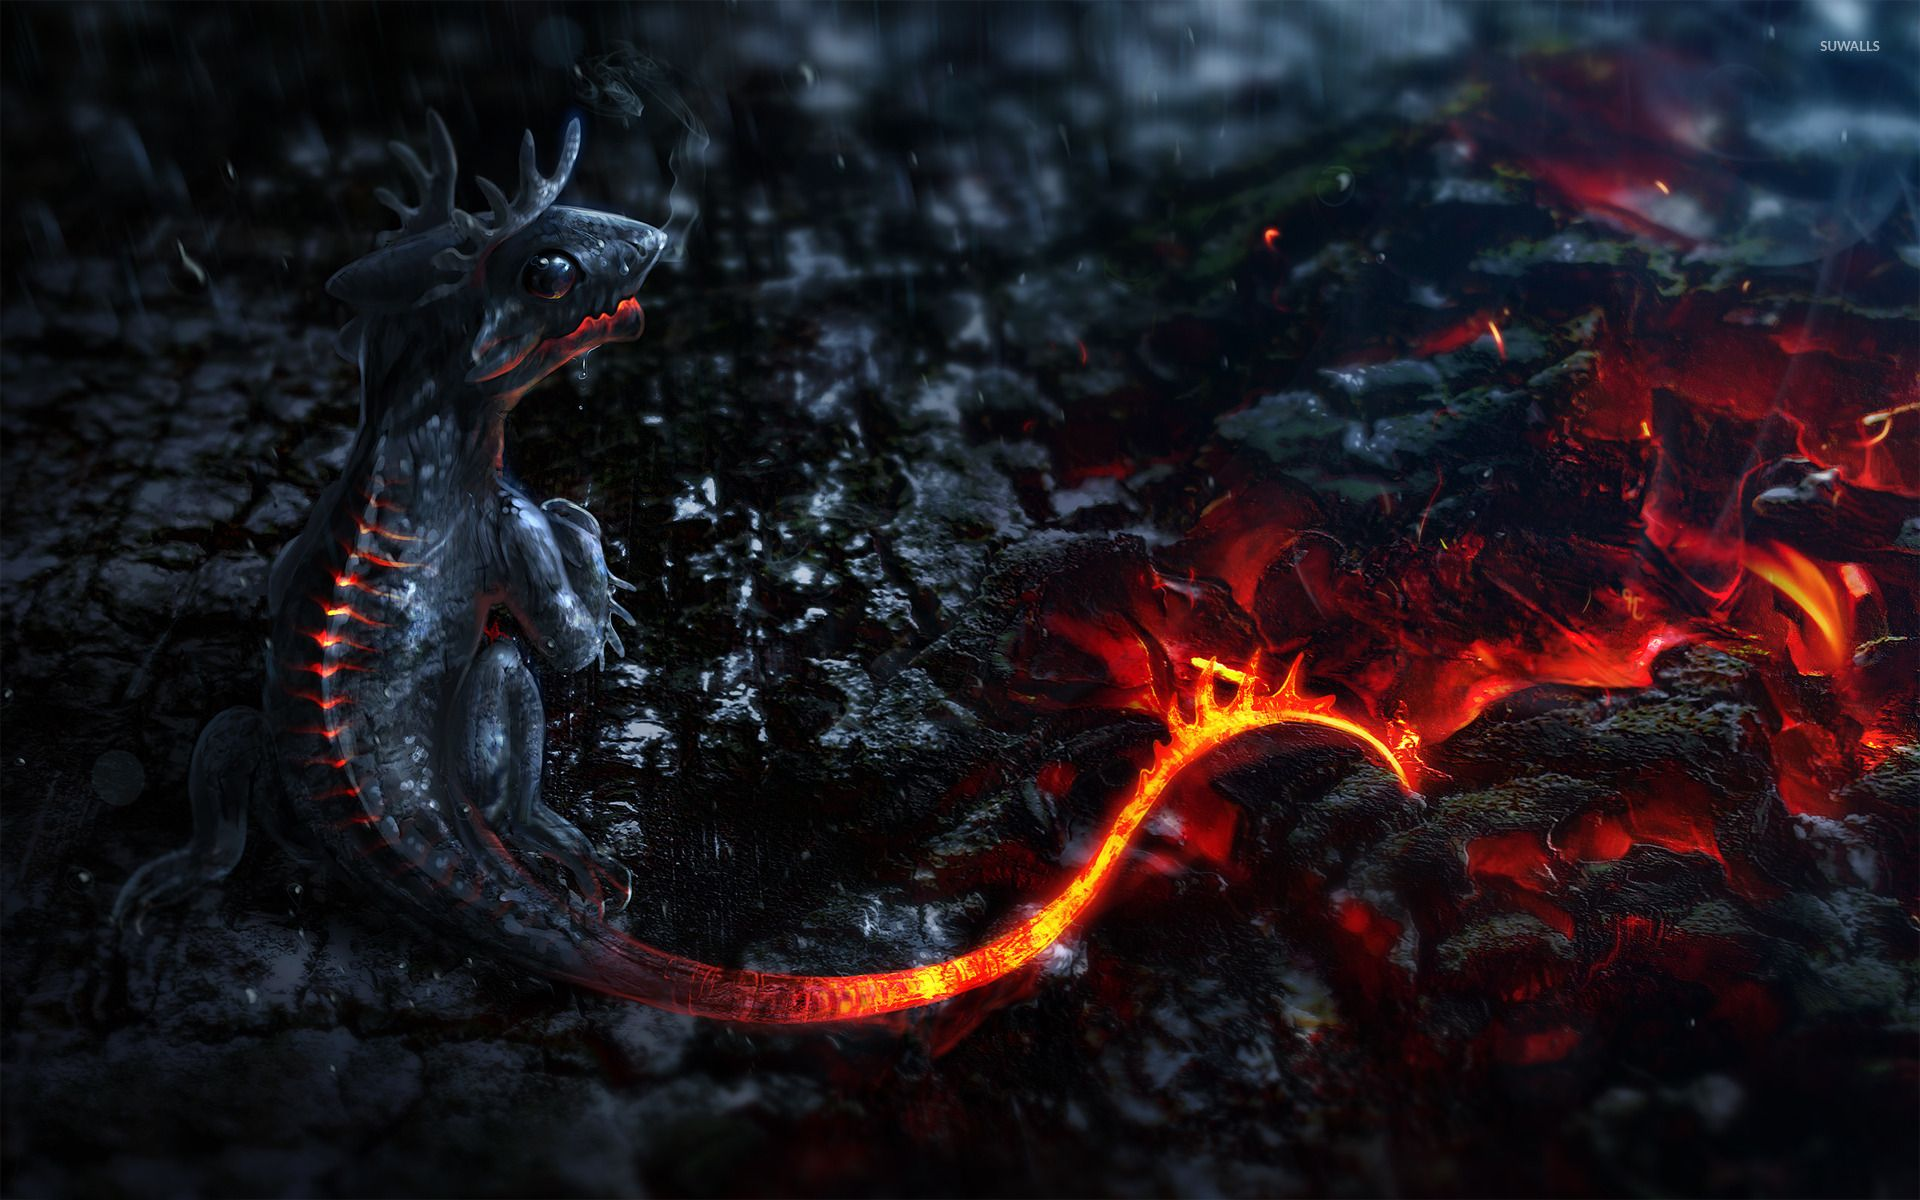 Lava Dragon Wallpapers Top Free Lava Dragon Backgrounds